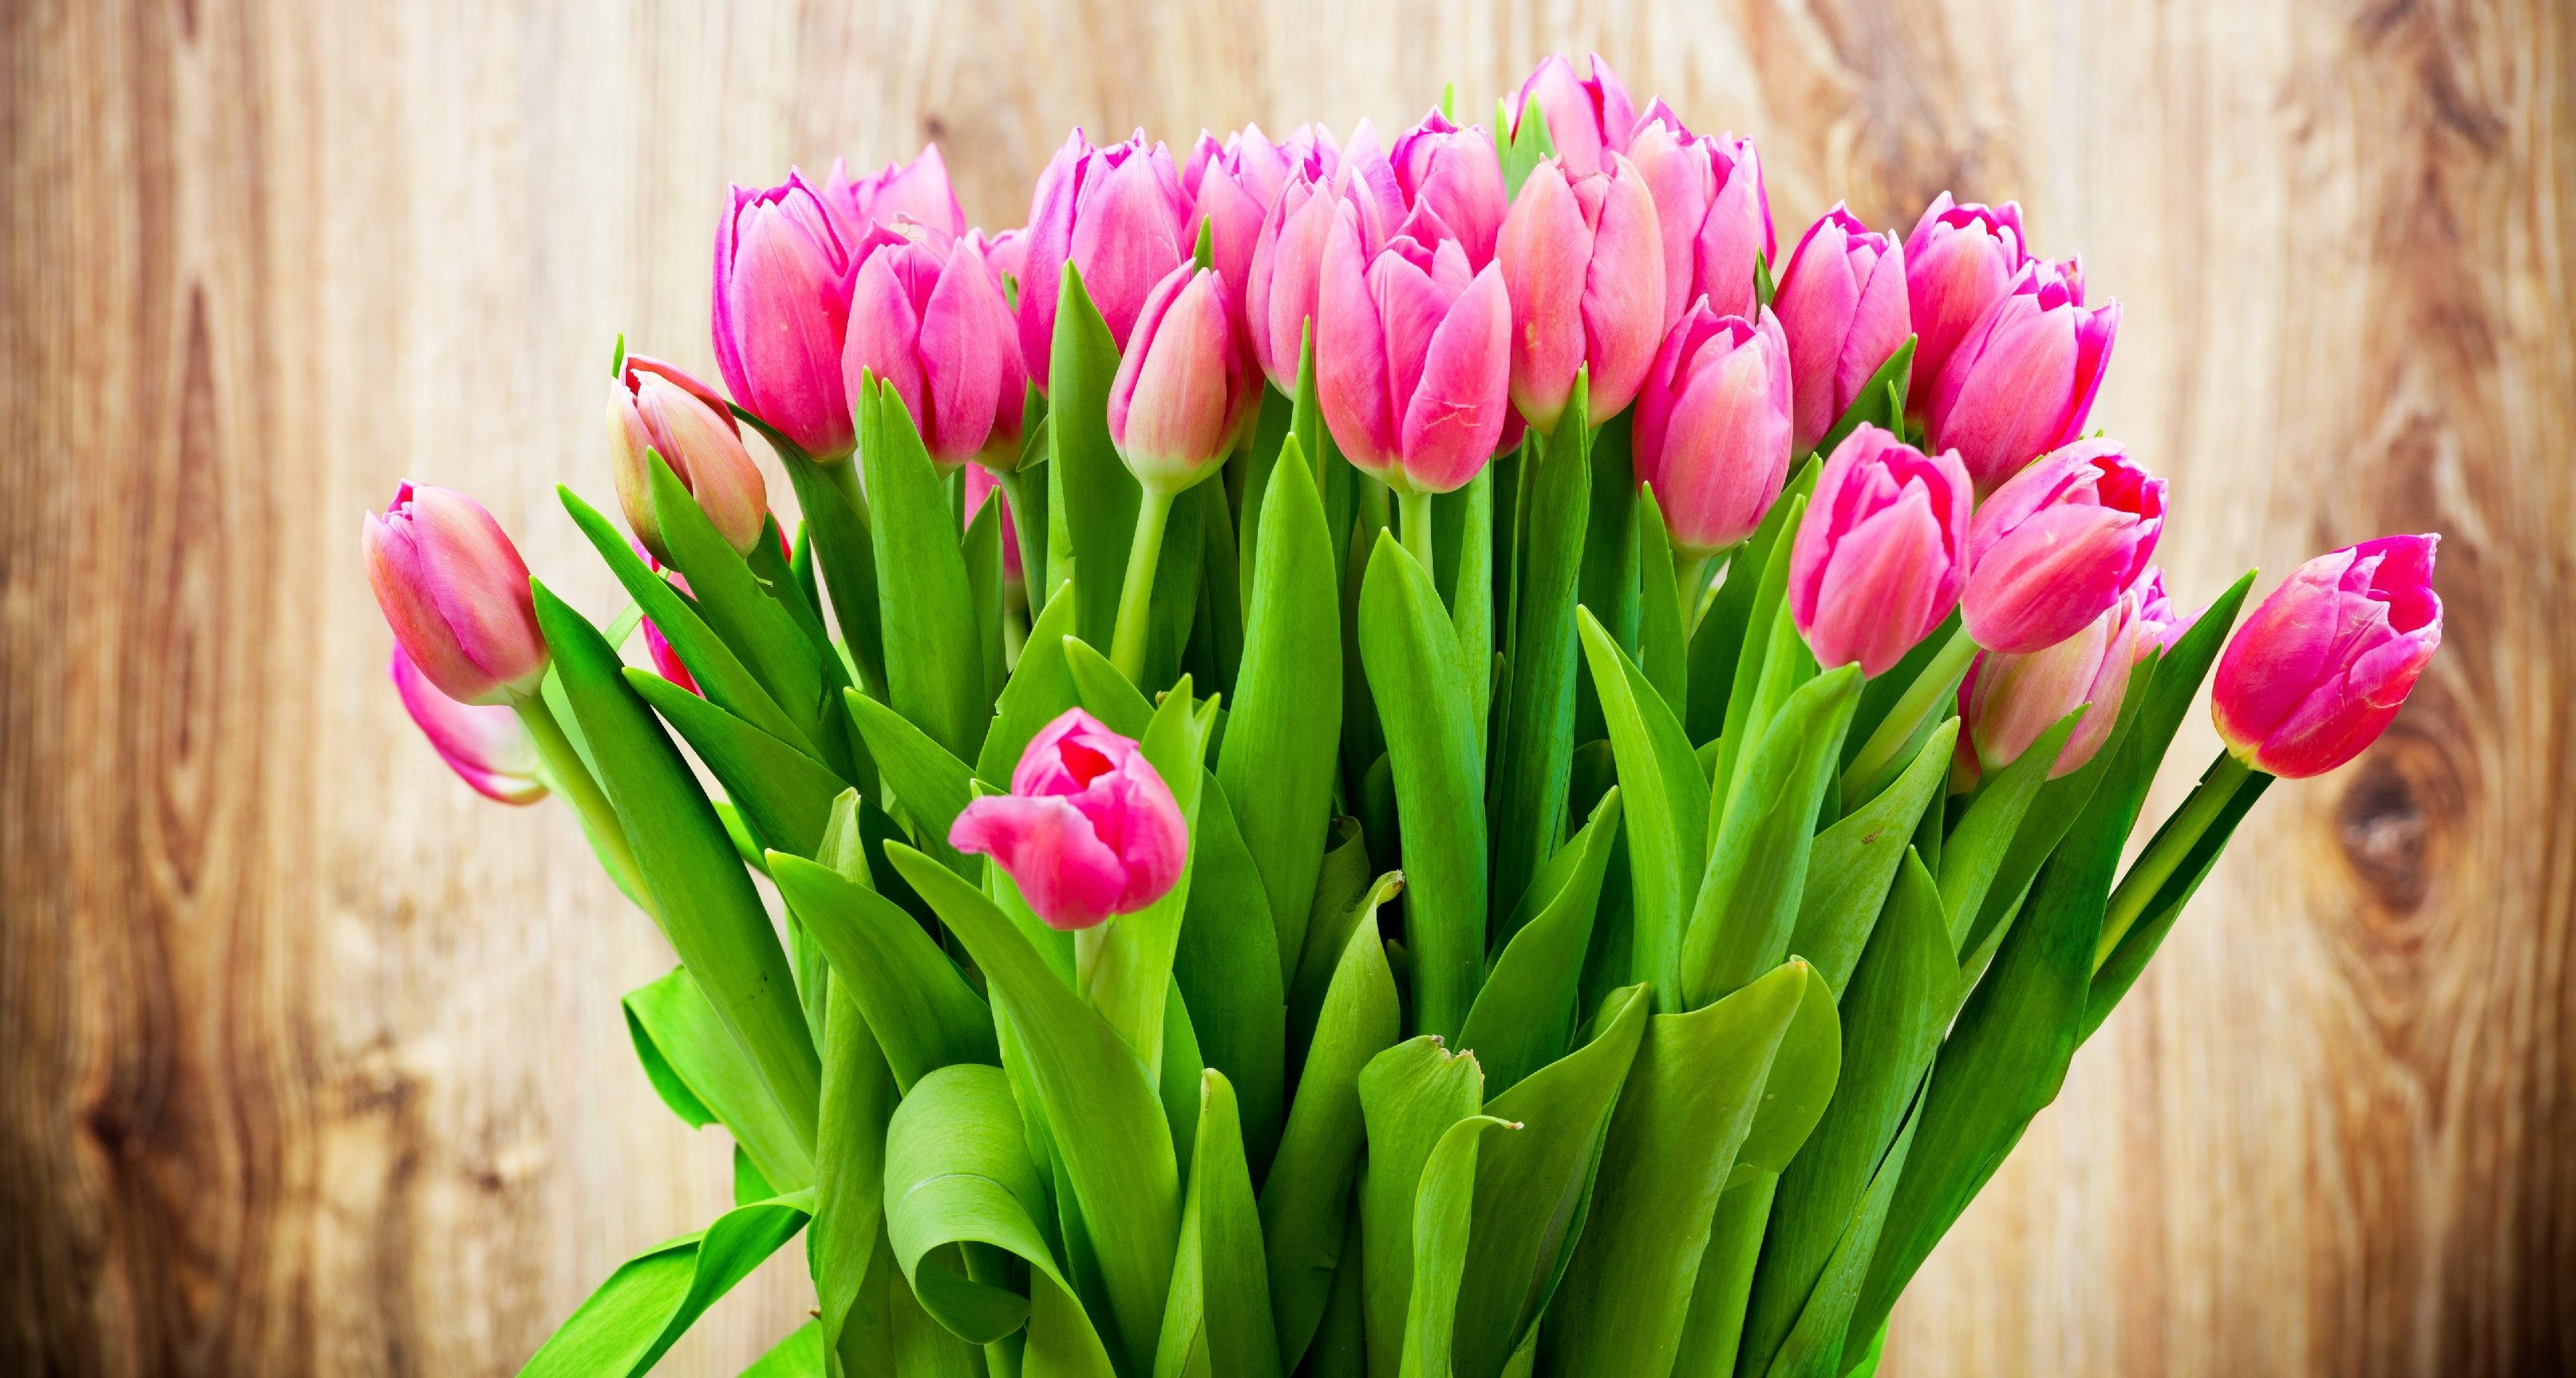 Wondering Which Is The Best Place To Get Tulips Flowers Online Just Go To Www Wholeblossoms Com And You Will Get An Tulips In Vase Tulips Flowers Pink Tulips